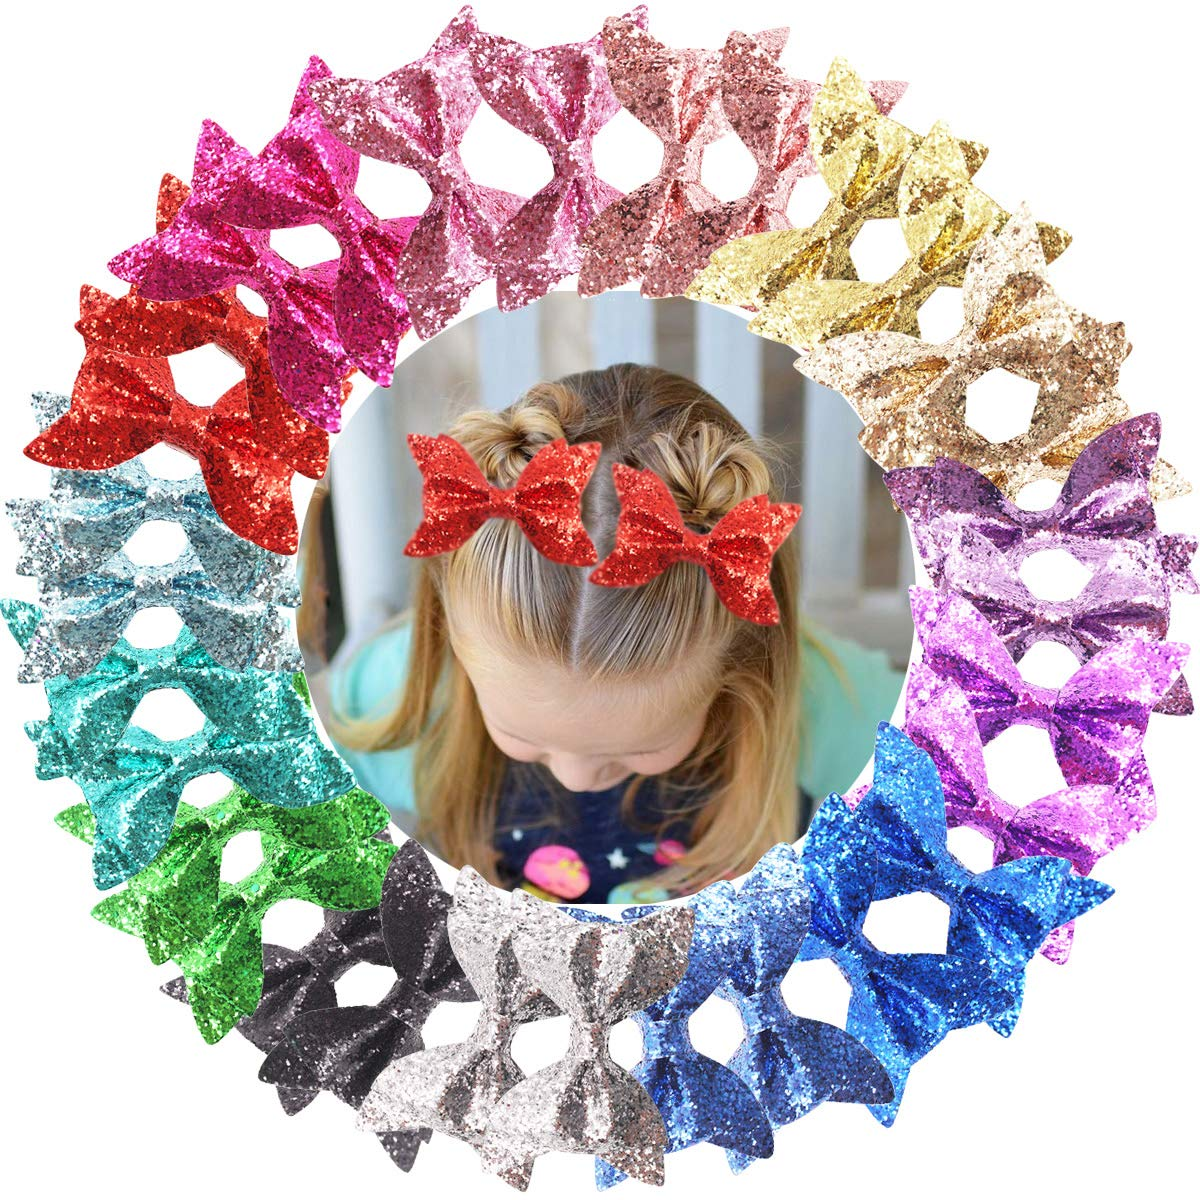 30PCS Baby Girls Glitter Hair Bows Clips 4.3Inch Sparkly Glitter Bows Alligator Hair Clips Pigtail Hair Bows Hair Accessories for Girls Toddlers Kids Children In Pairs